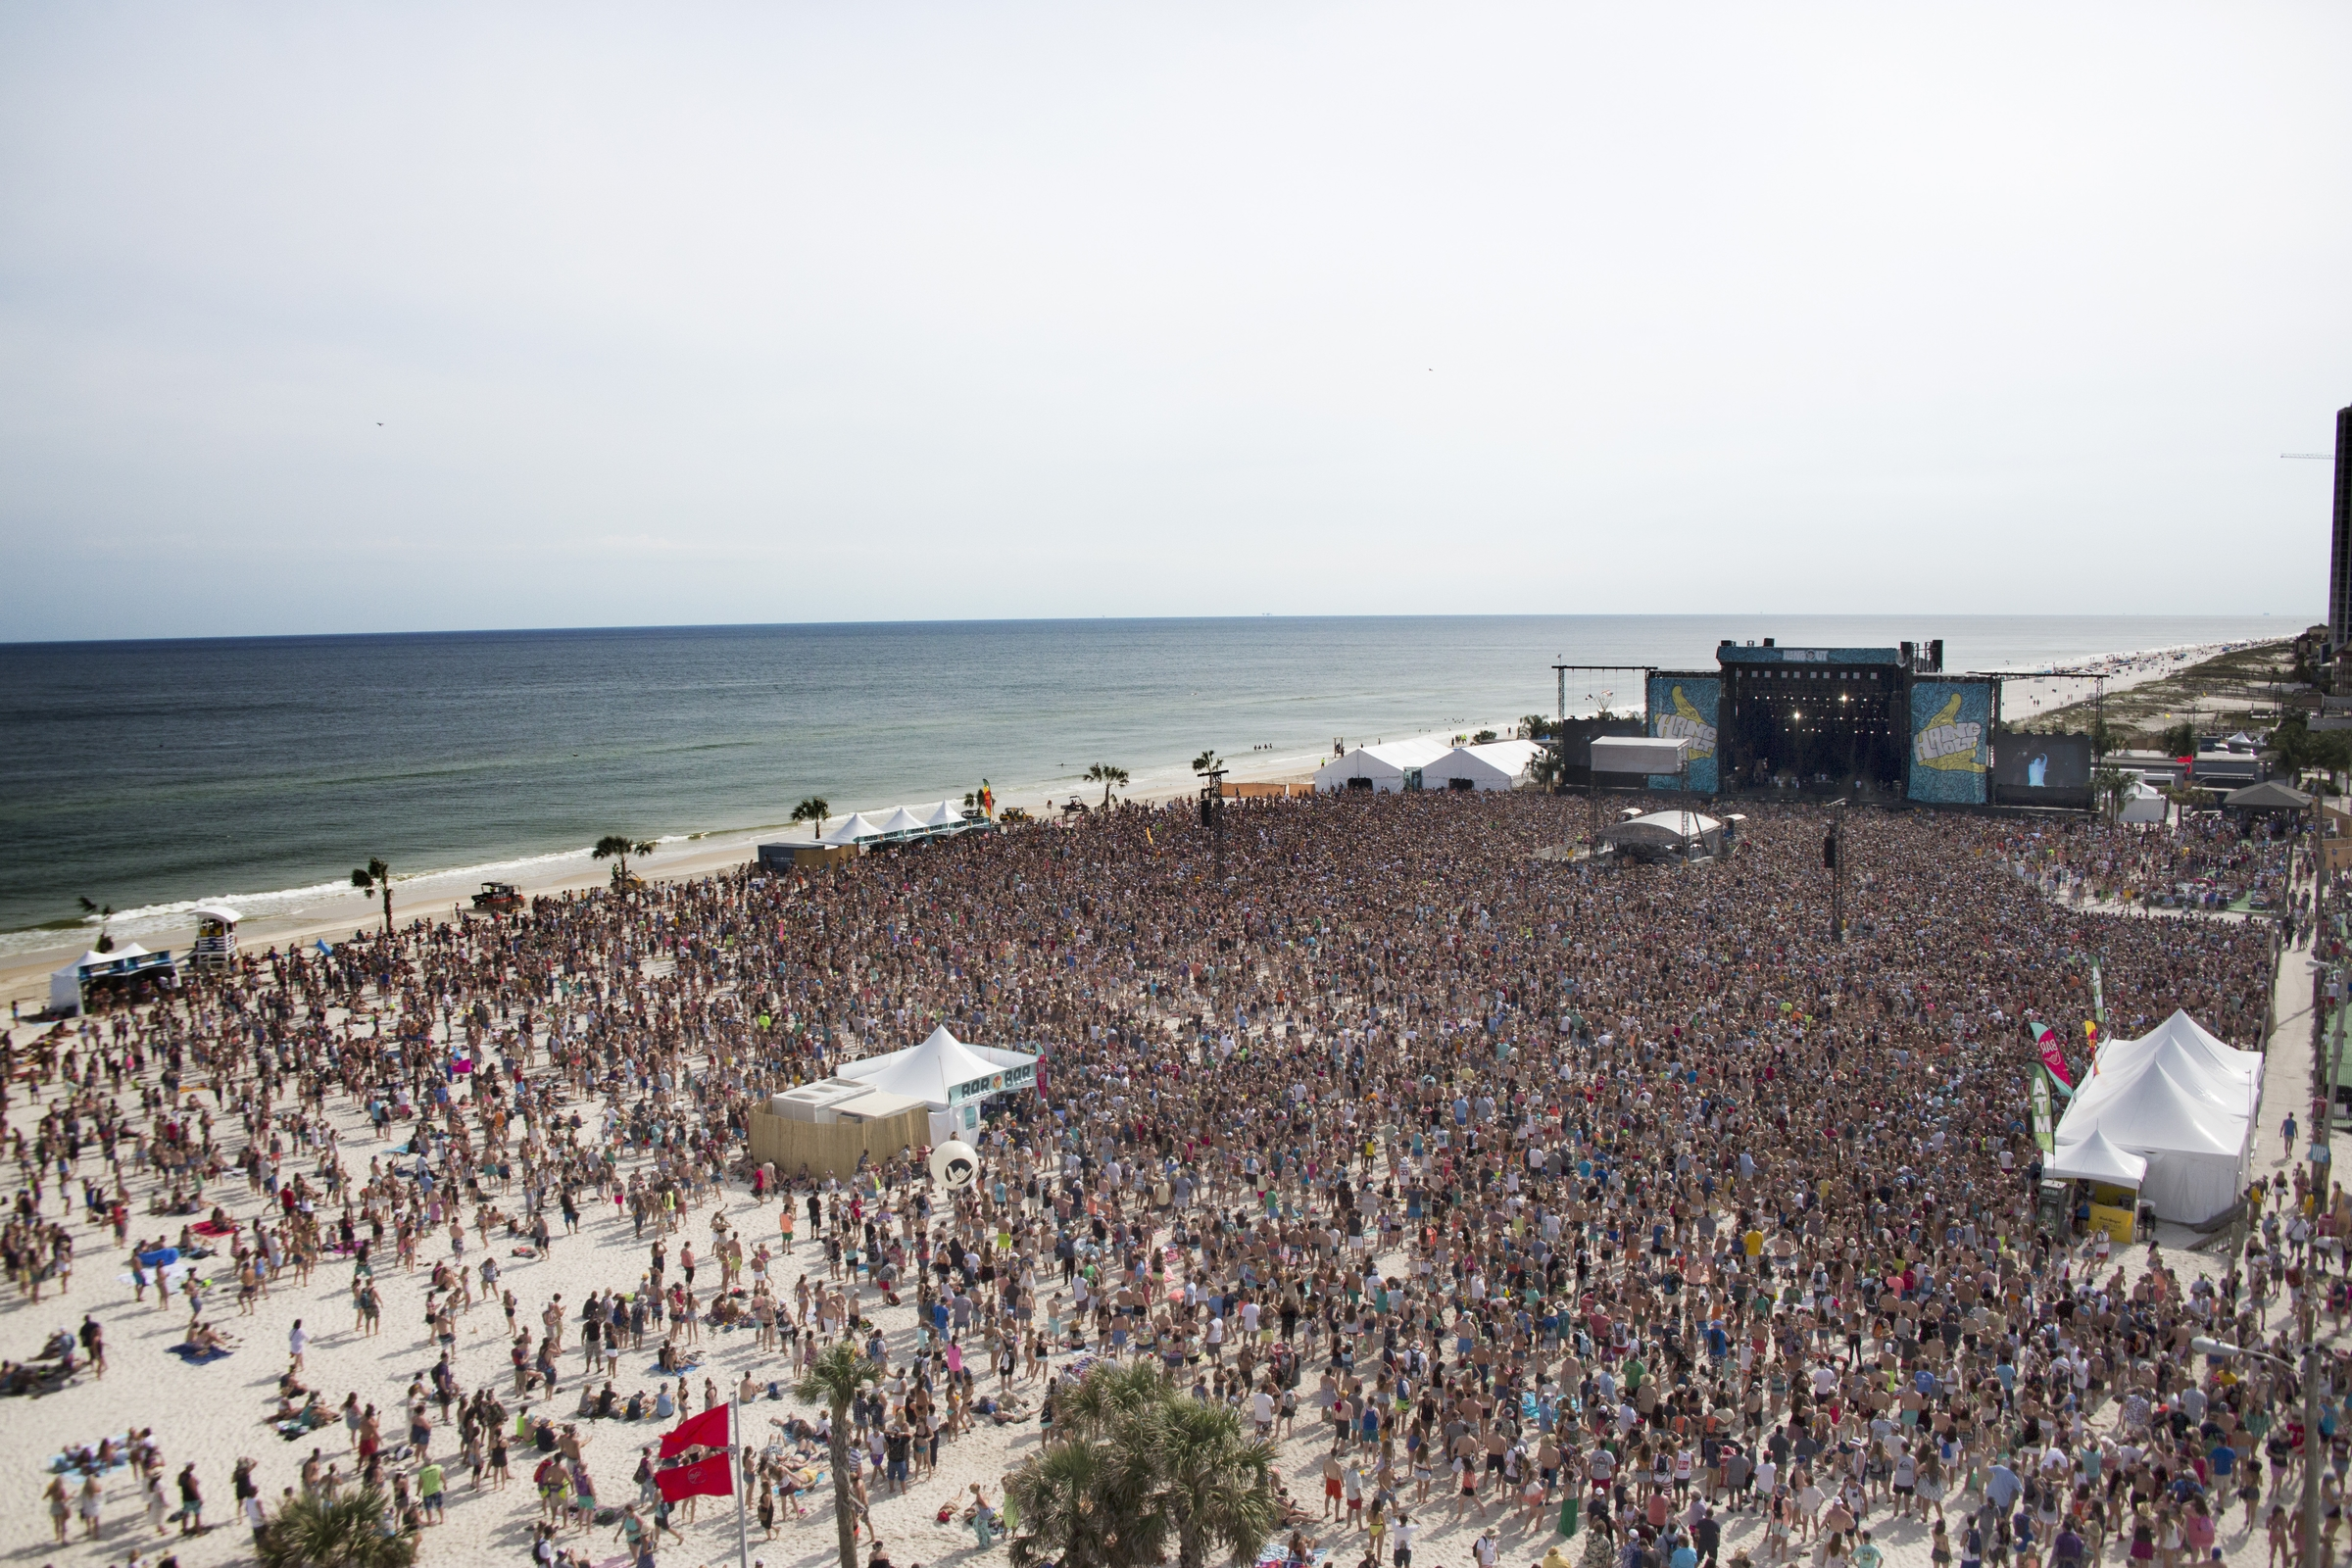 The Hangout Stage packed on Sunday at Hangout Fest 2016. Photo: Courtesy of Hangout Music Festival